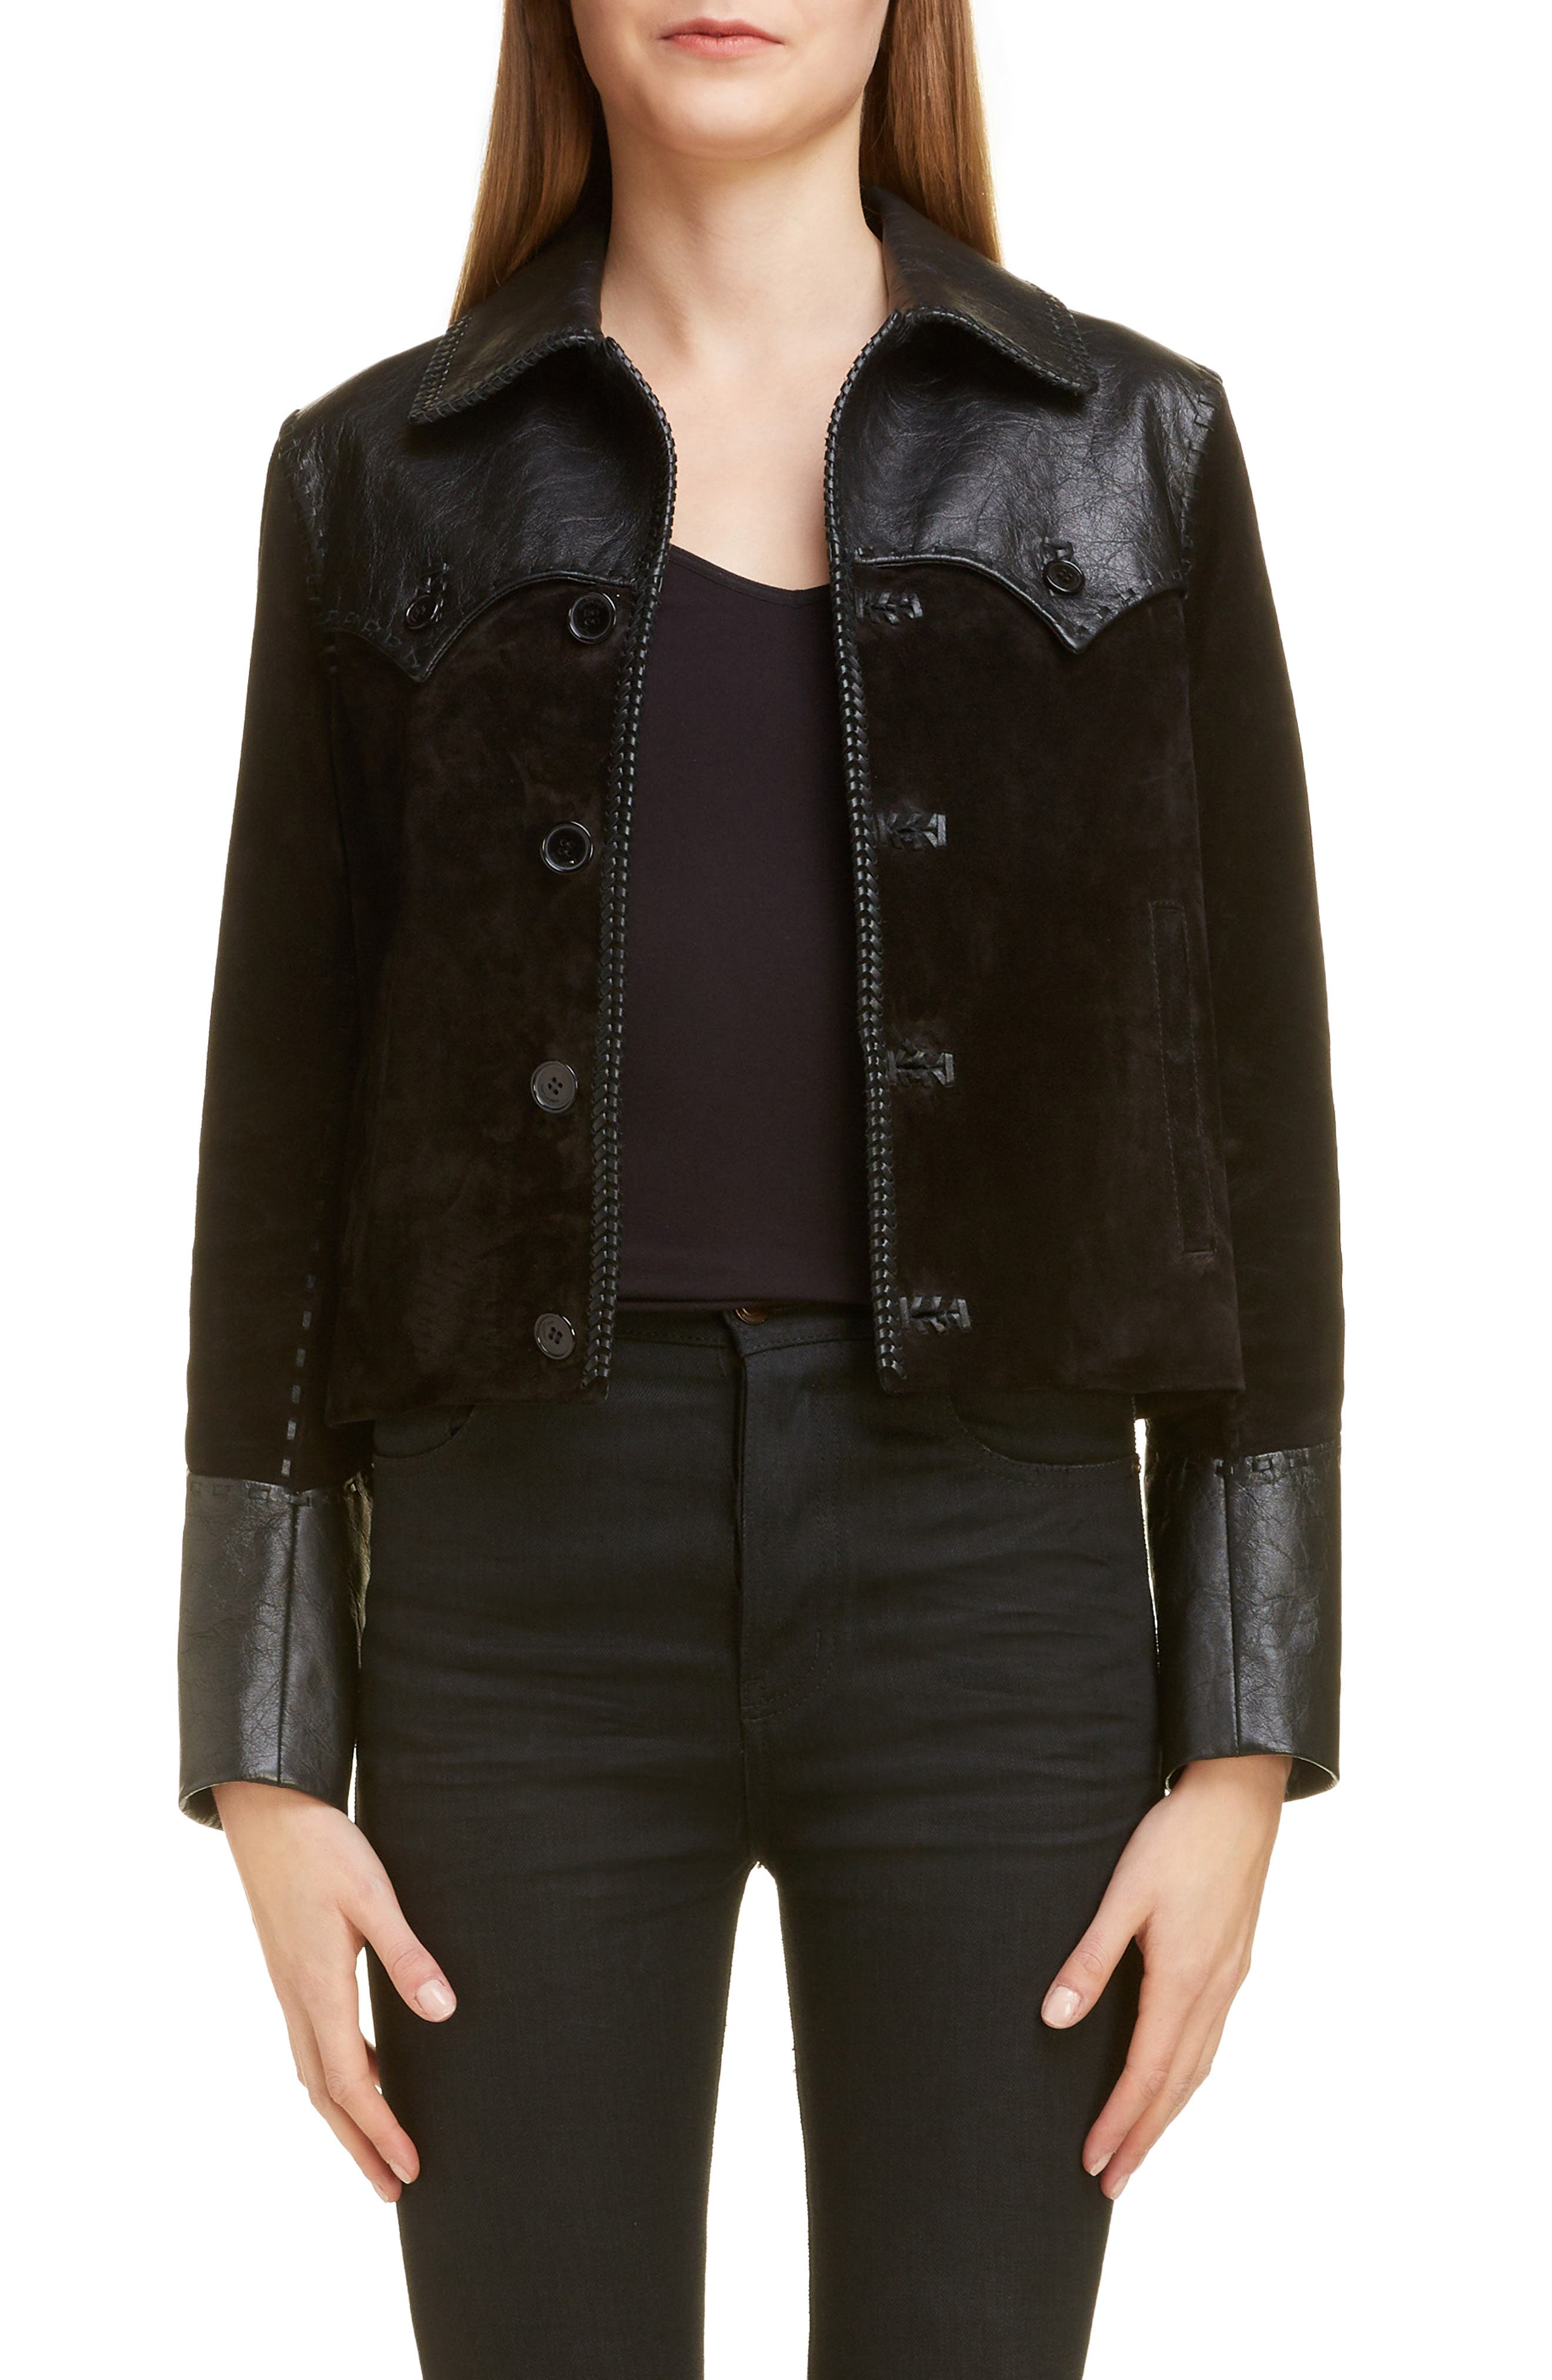 2d2a81102d1 Women's Saint Laurent Coats & Jackets | Nordstrom